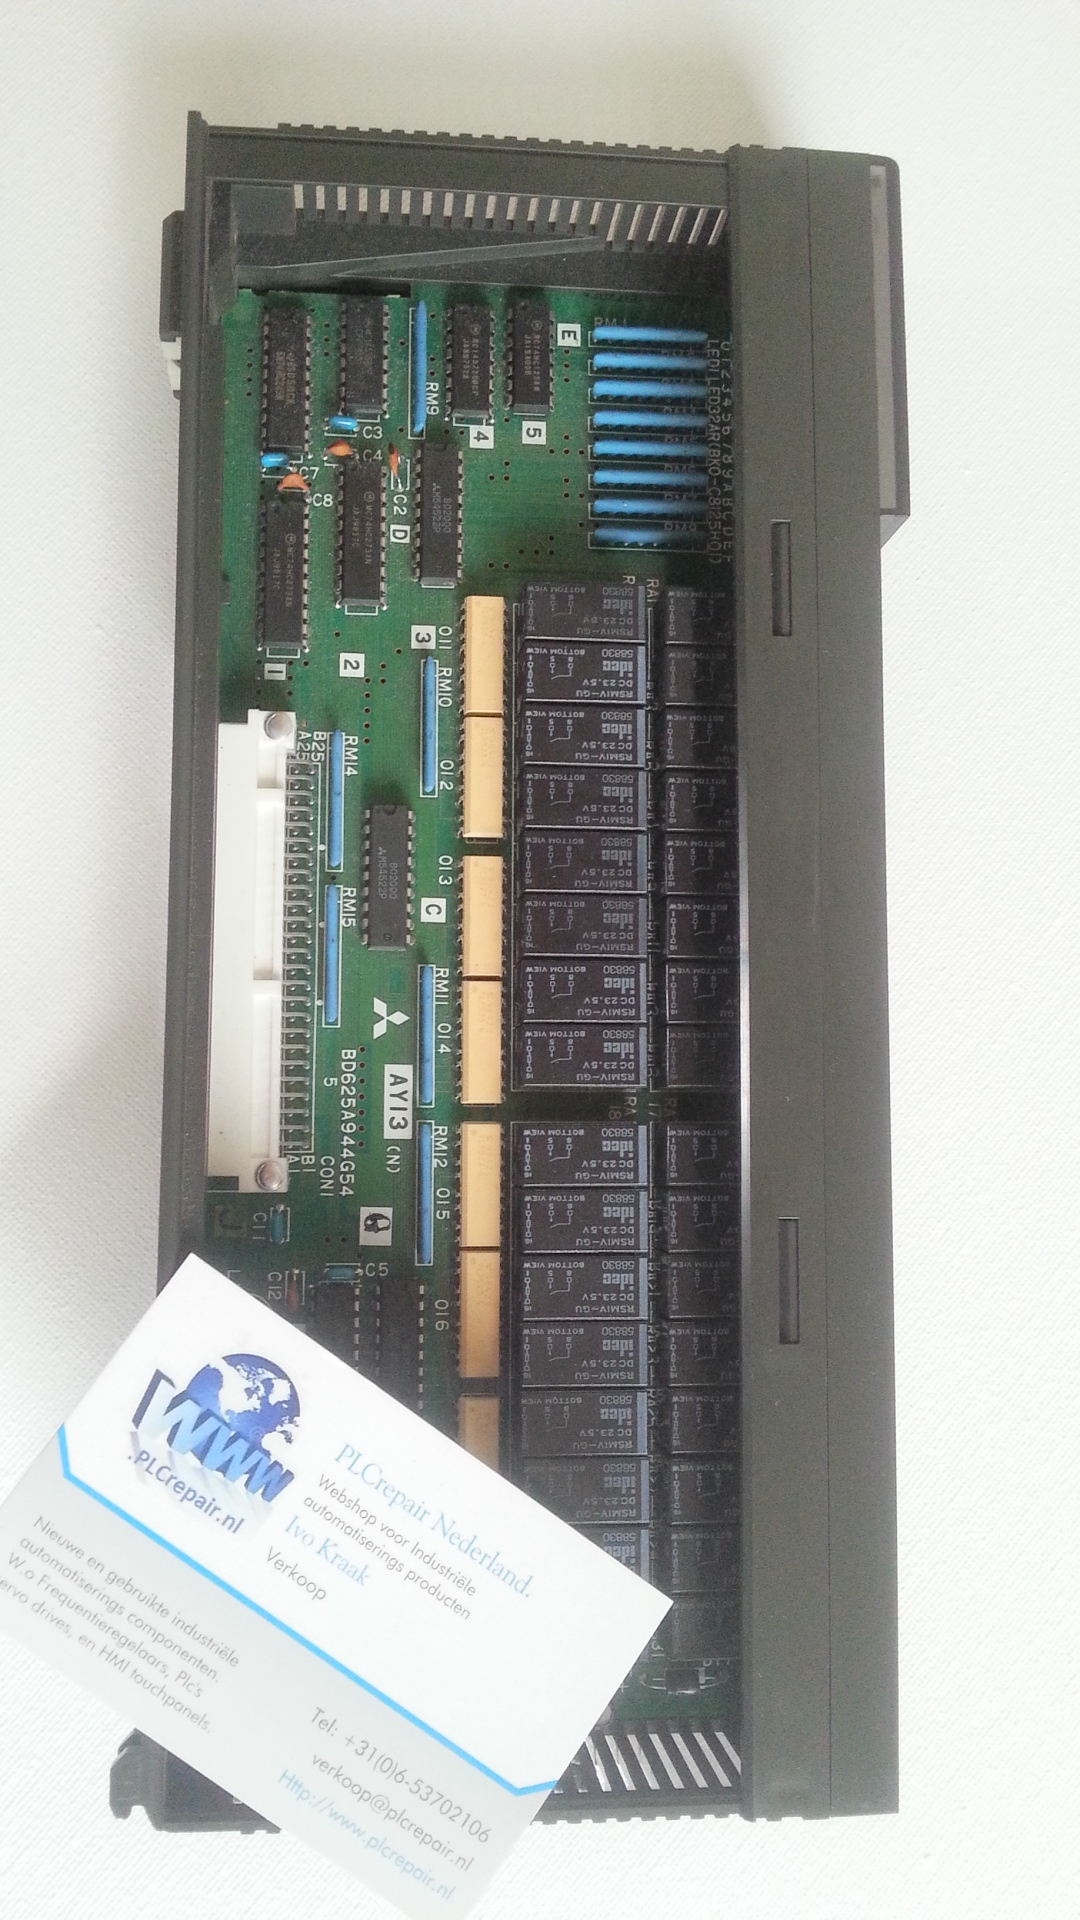 AY13EU Melsec output card used tested and warranty.